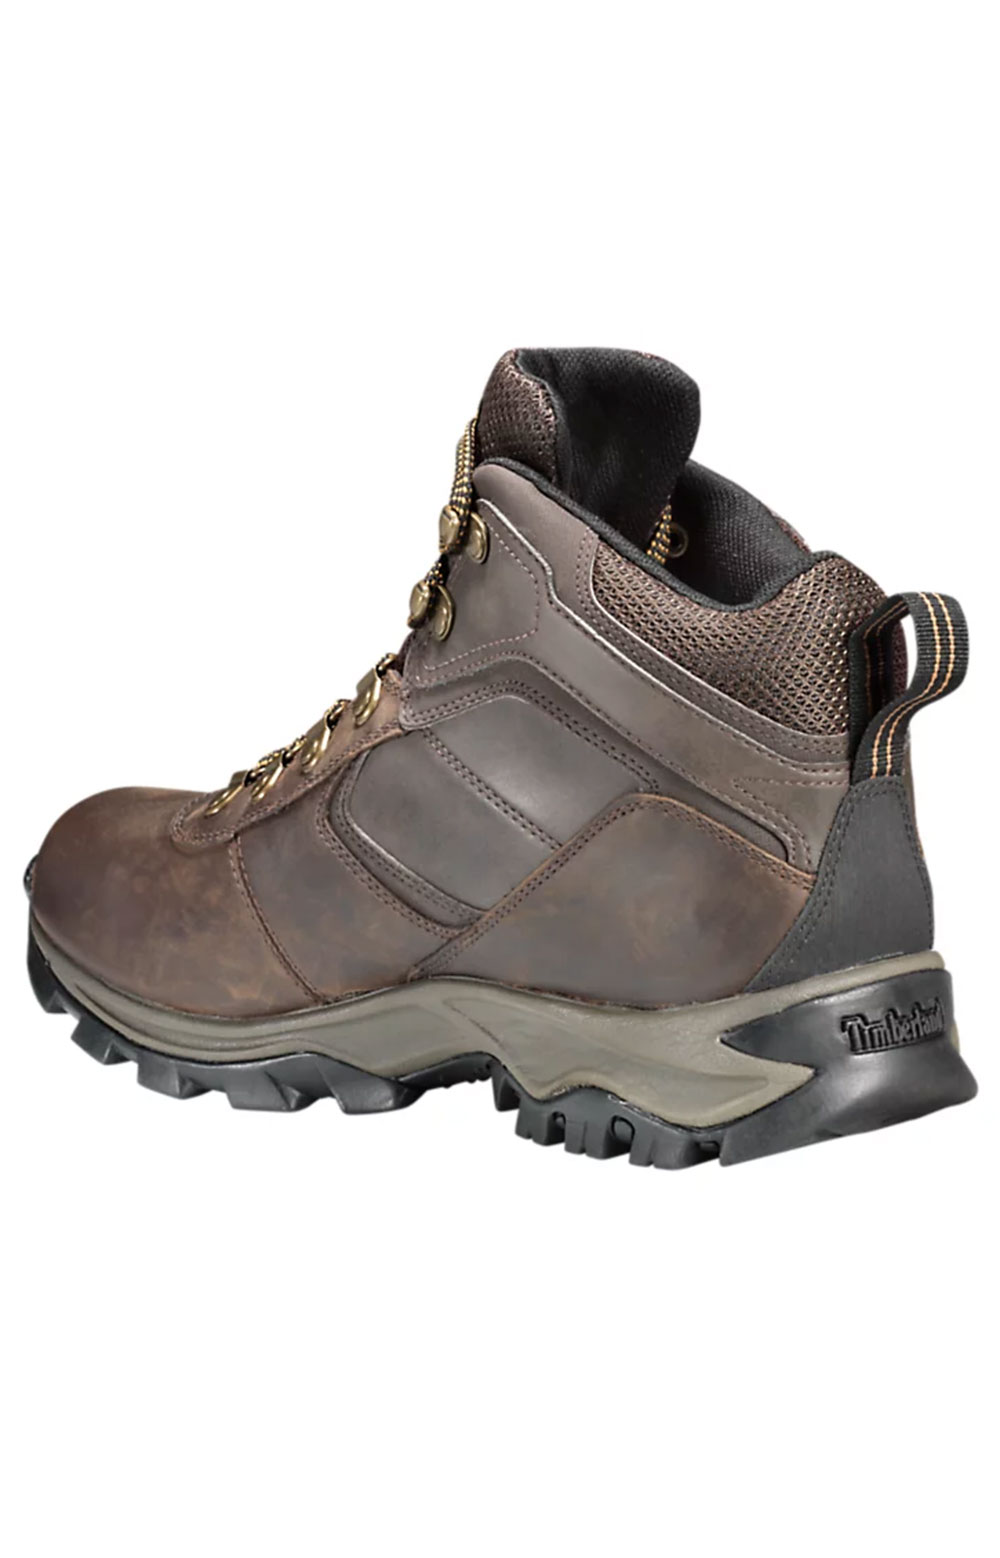 (TB02730R242) Mt. Maddsen Mid Waterproof Hiking Boots - Dark Brown  3